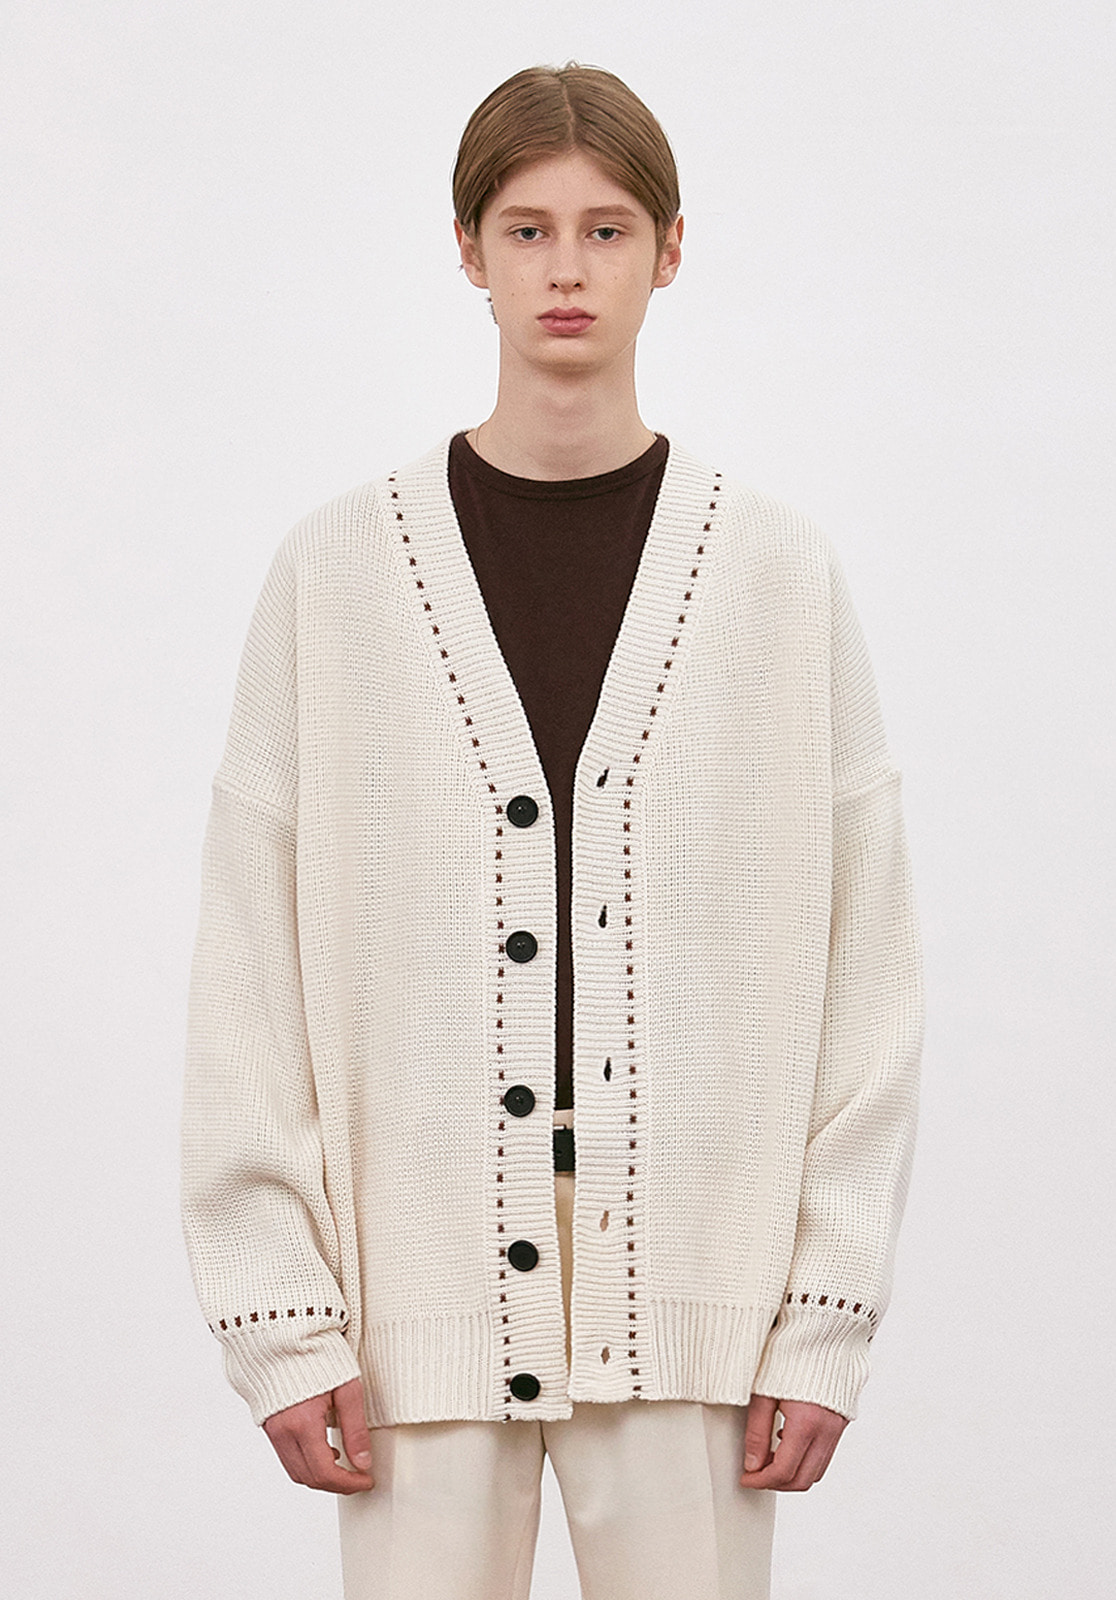 V546 STITCHES OVERSIZE KNIT CARDIGAN  IVORY